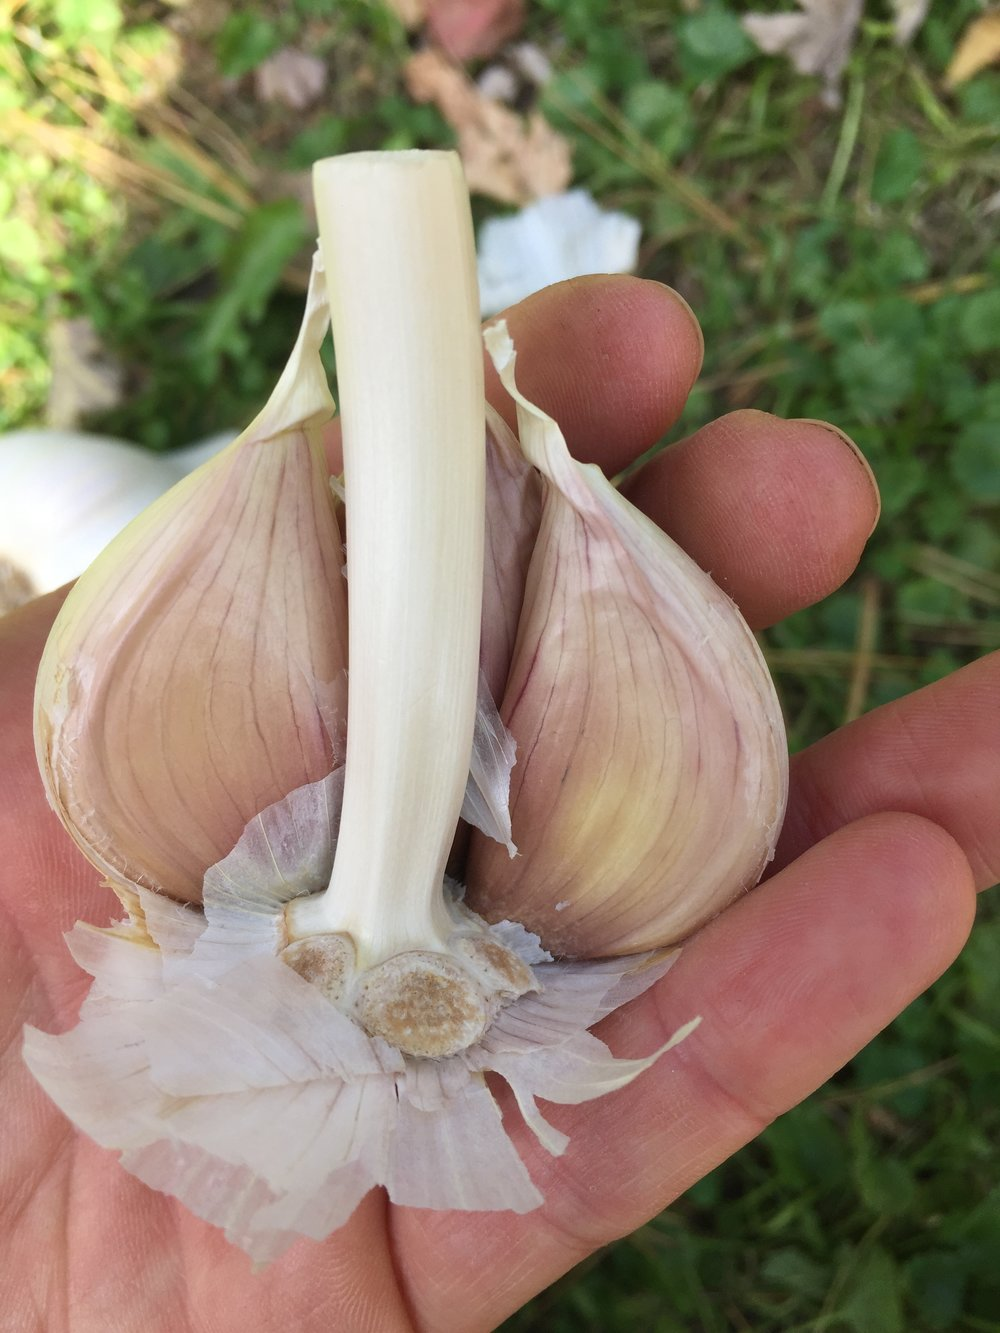 how do you plant garlic?